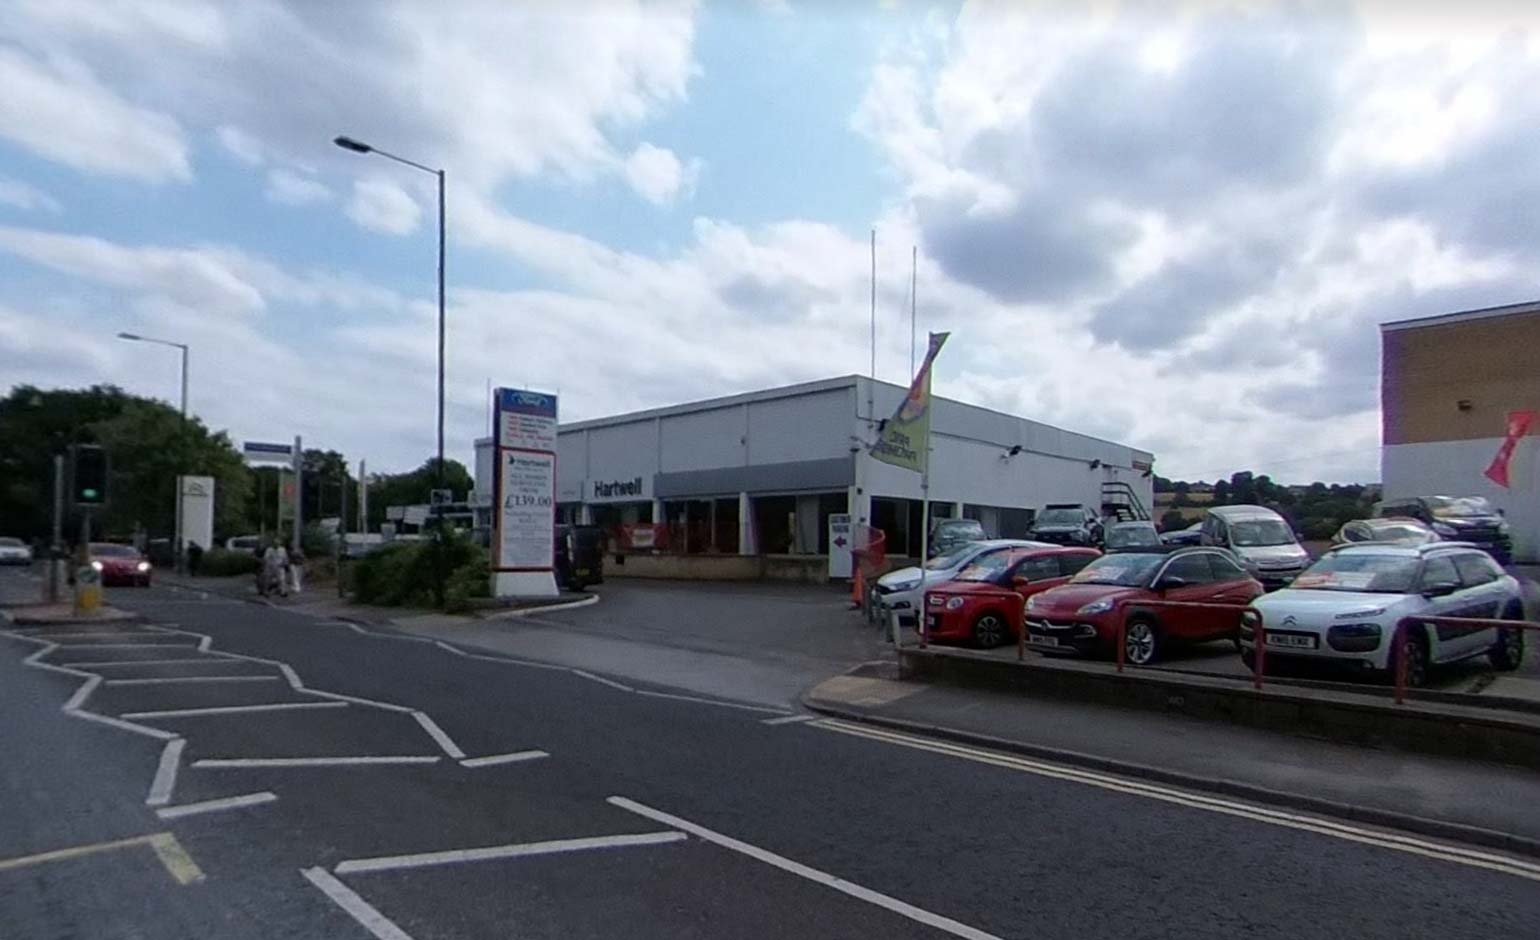 Views sought on proposals to redevelop Hartwell Garage site in Newbridge